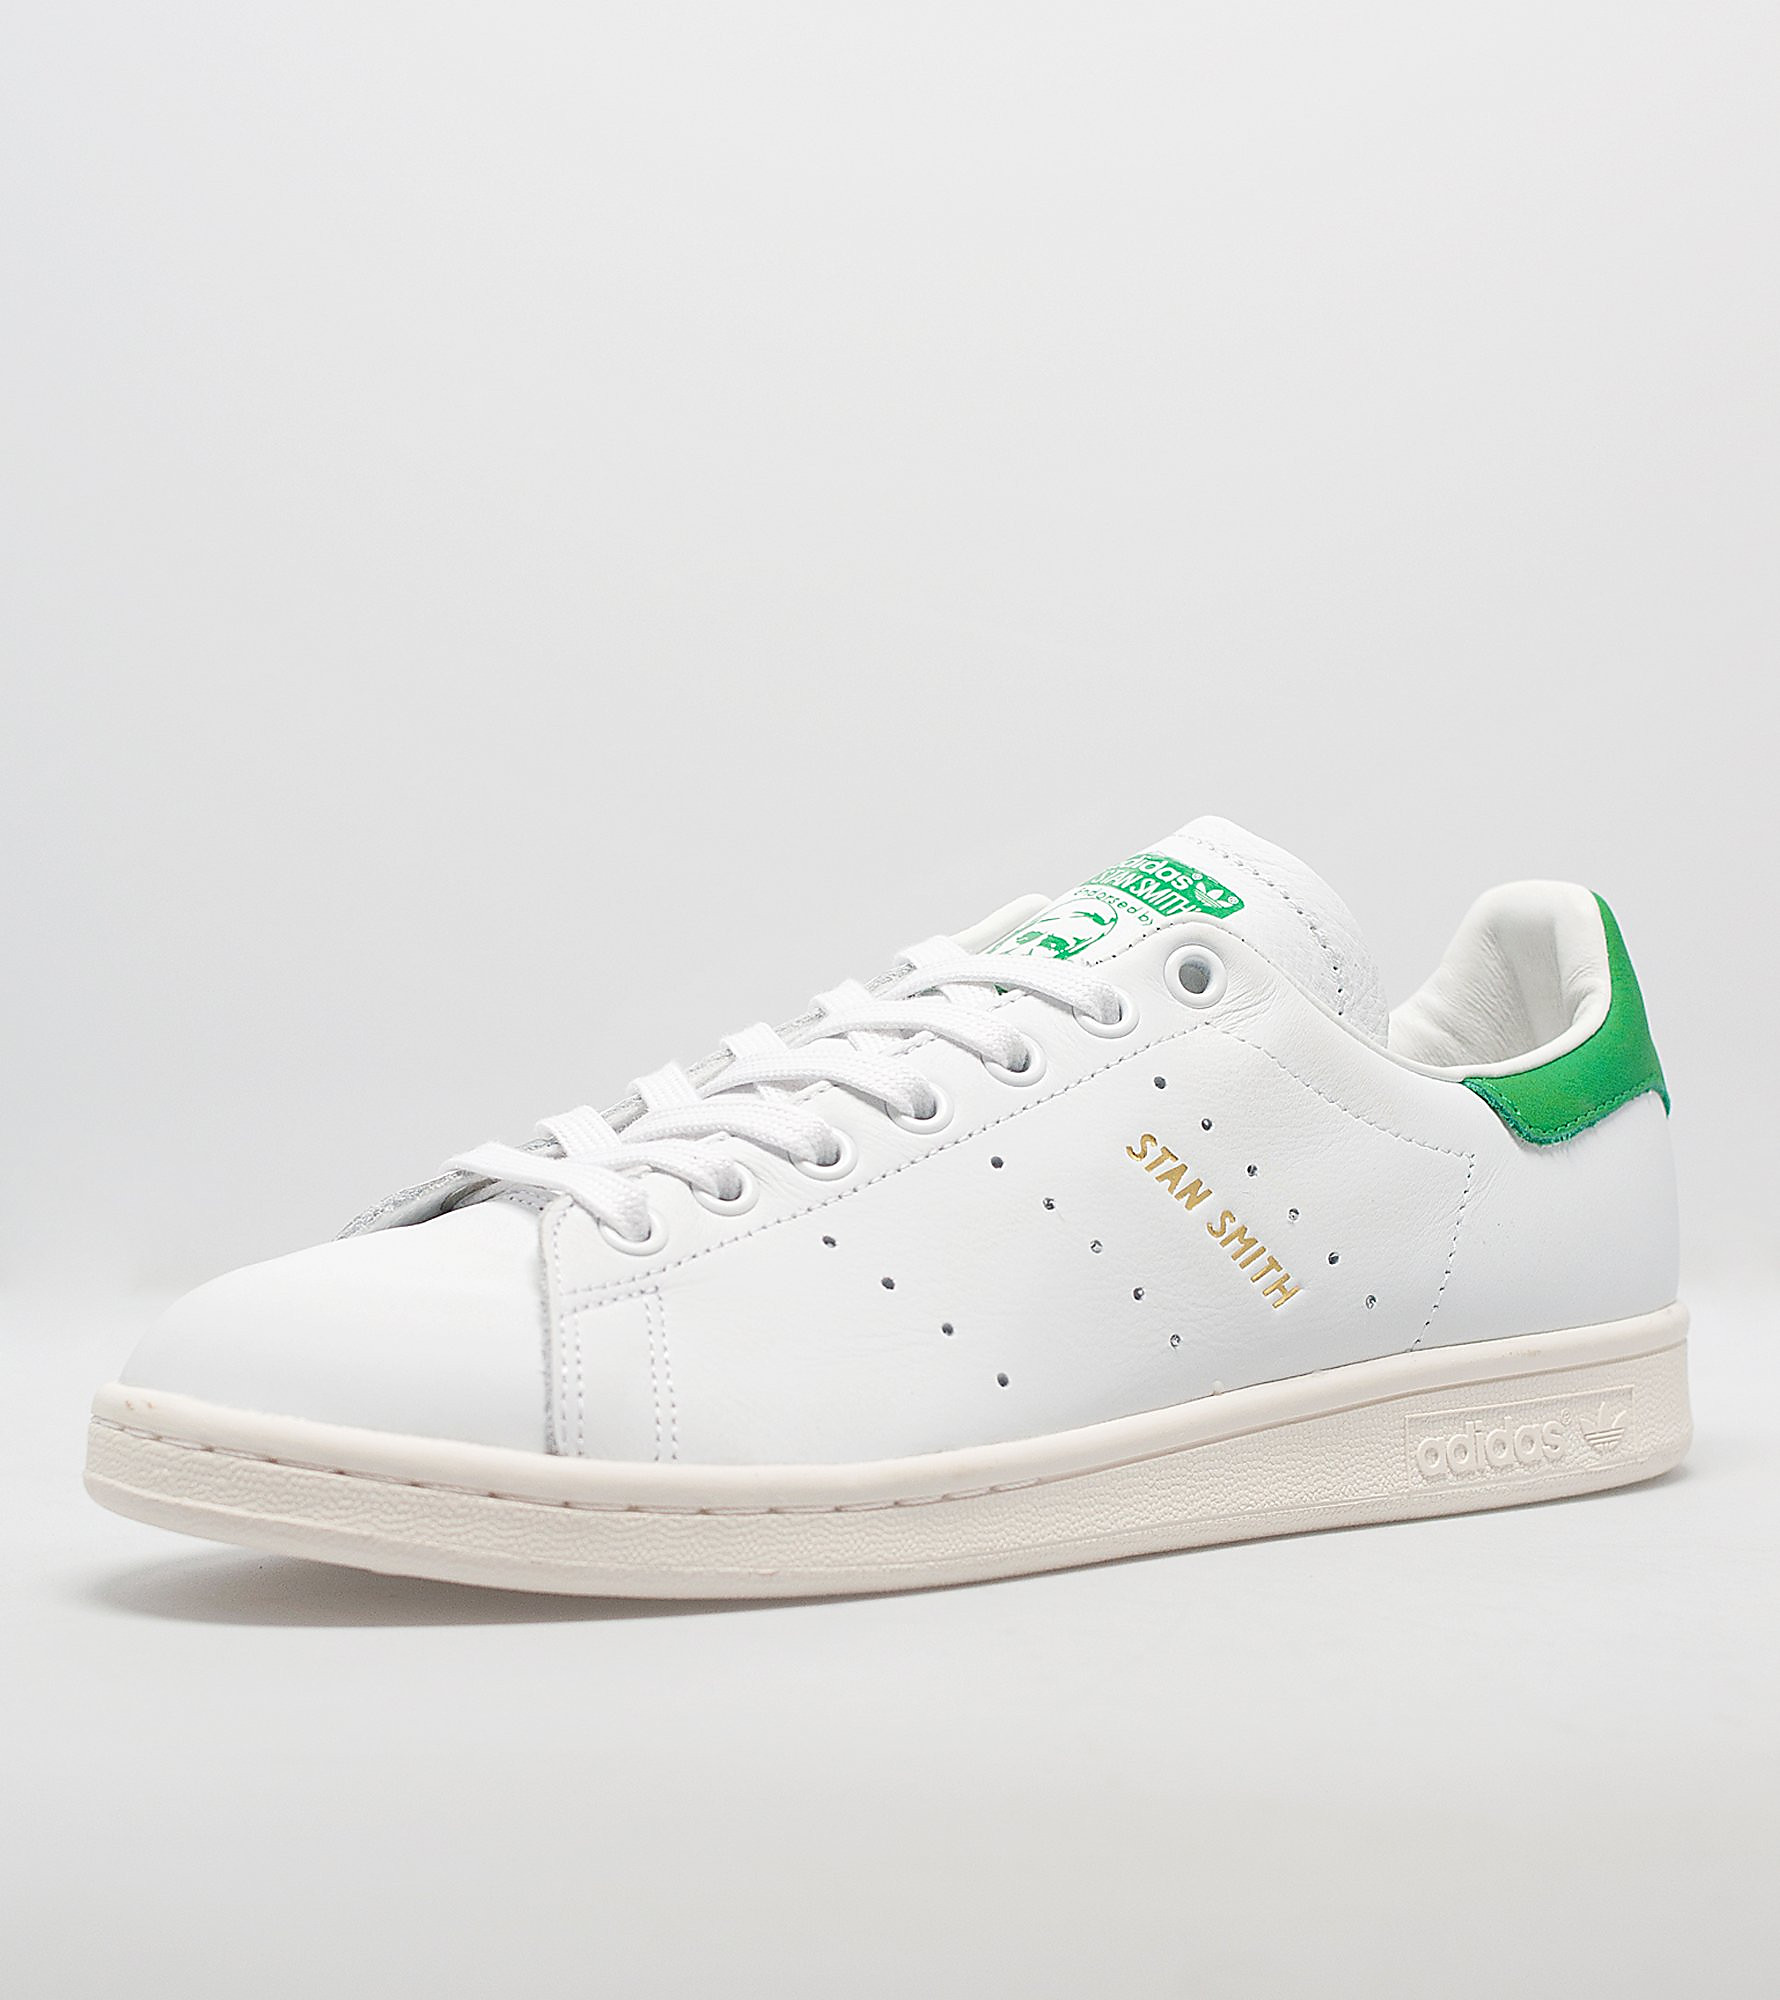 adidas originals stan smith 80s white/green